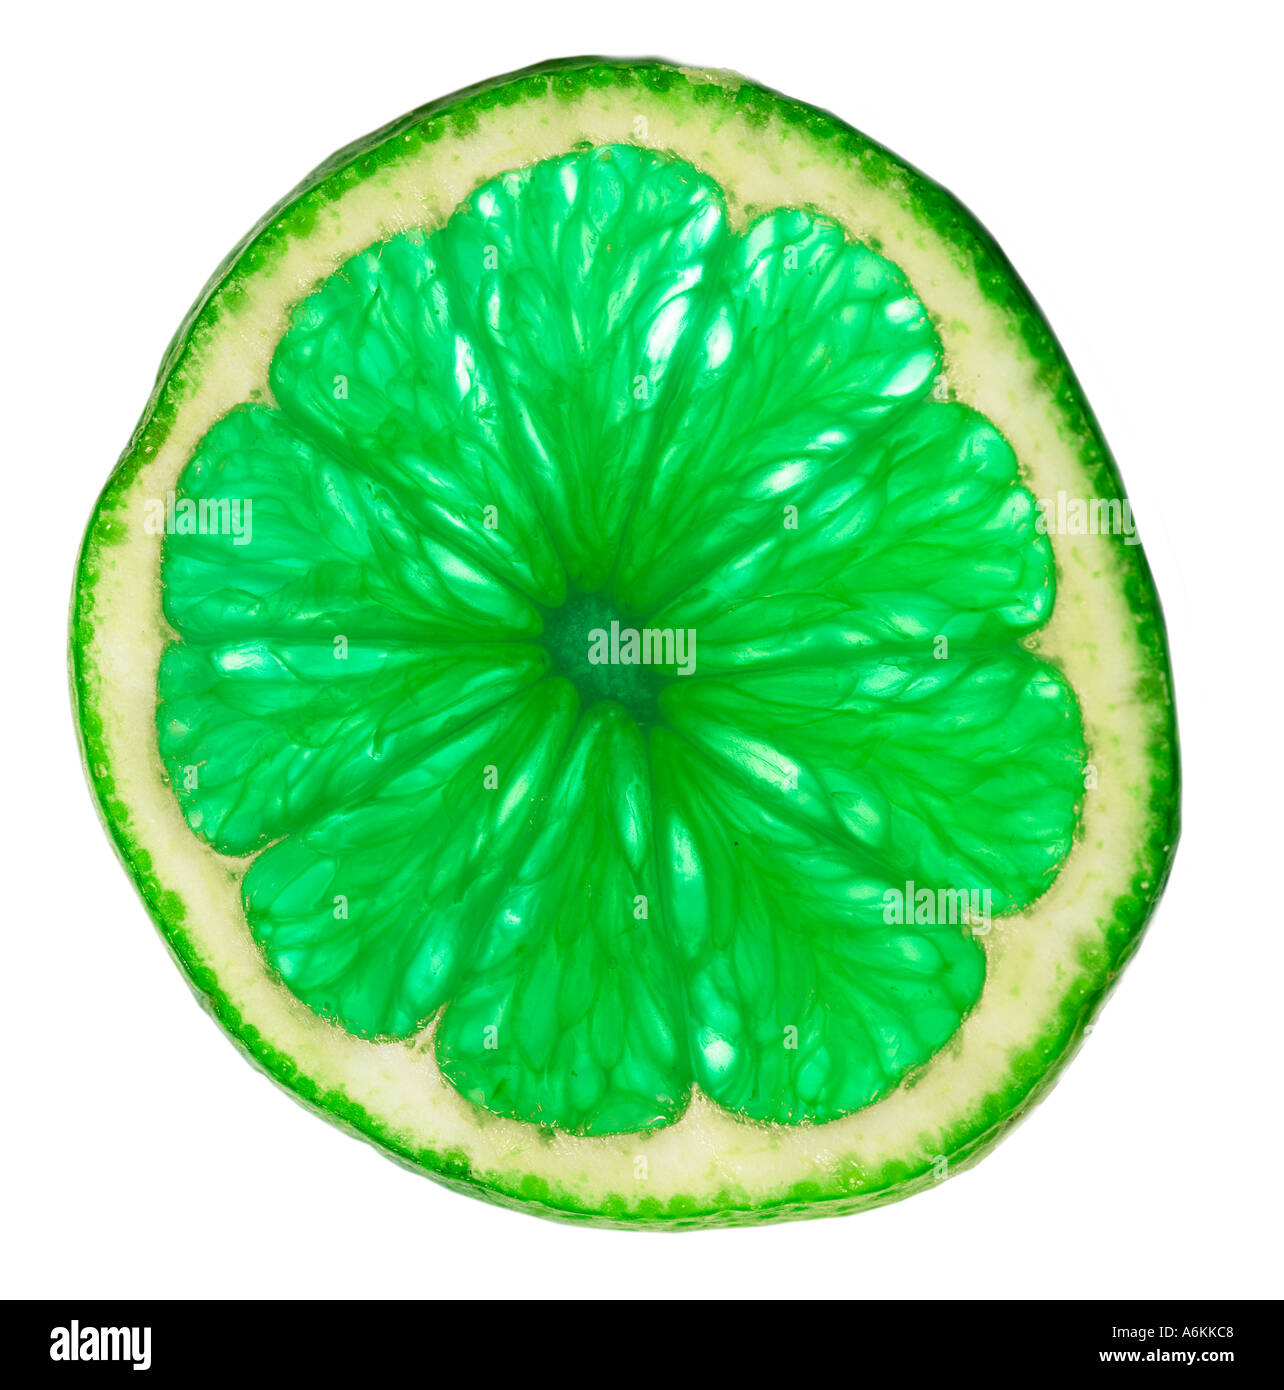 Single slice of lime (close-up) - Stock Image